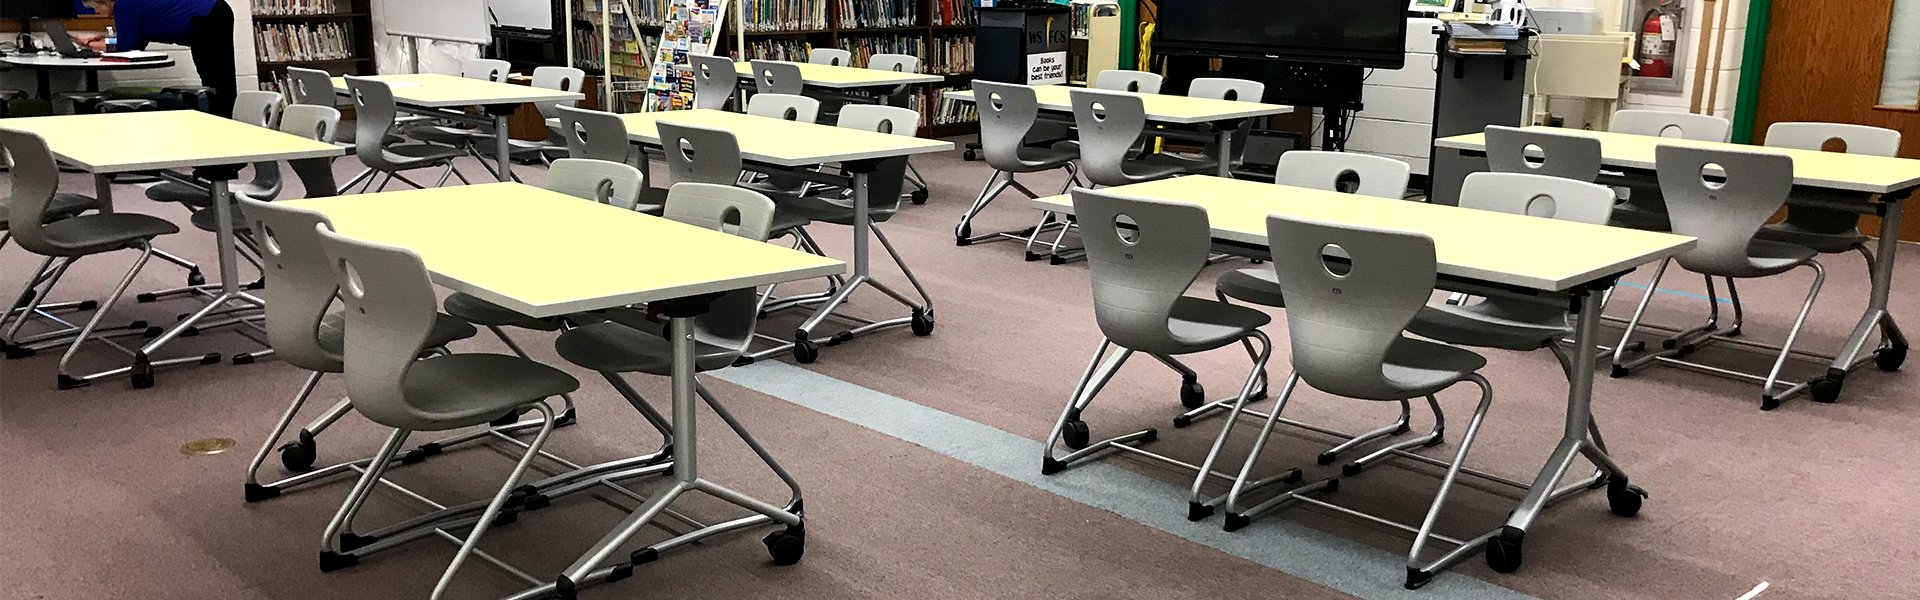 CFC Educational Furniture for Schools